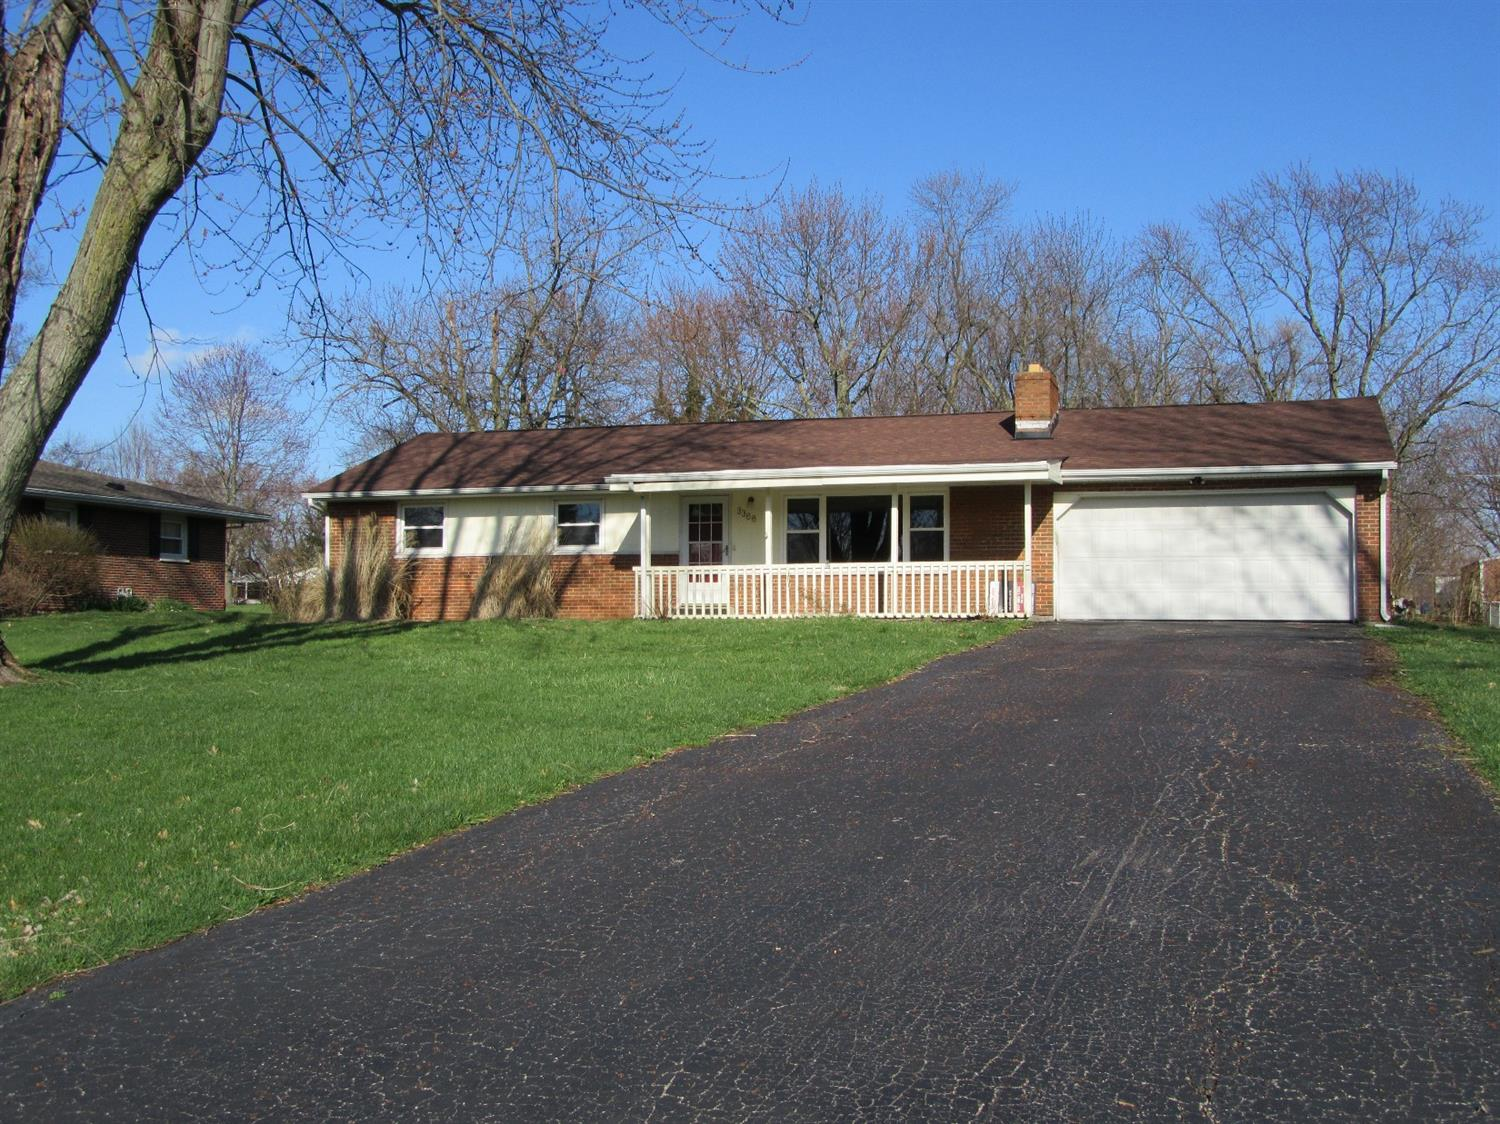 3368 Moyer Dr Franklin Twp., OH